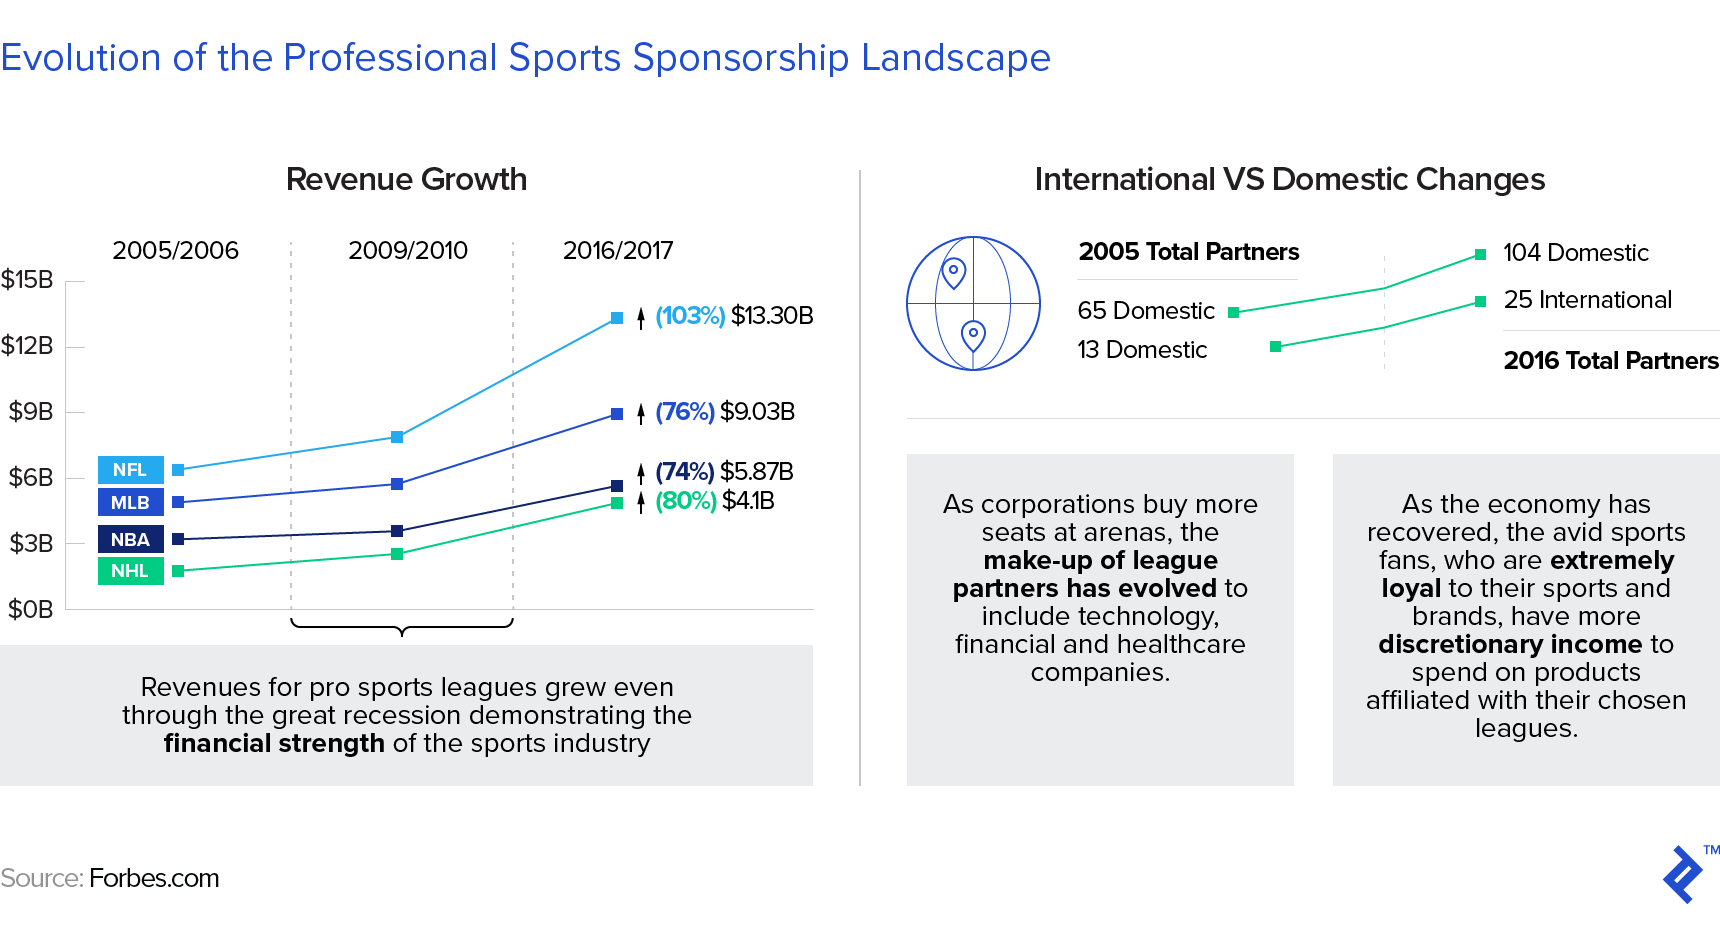 diagrams showing the evolution of the professional sports sponsorship landscape